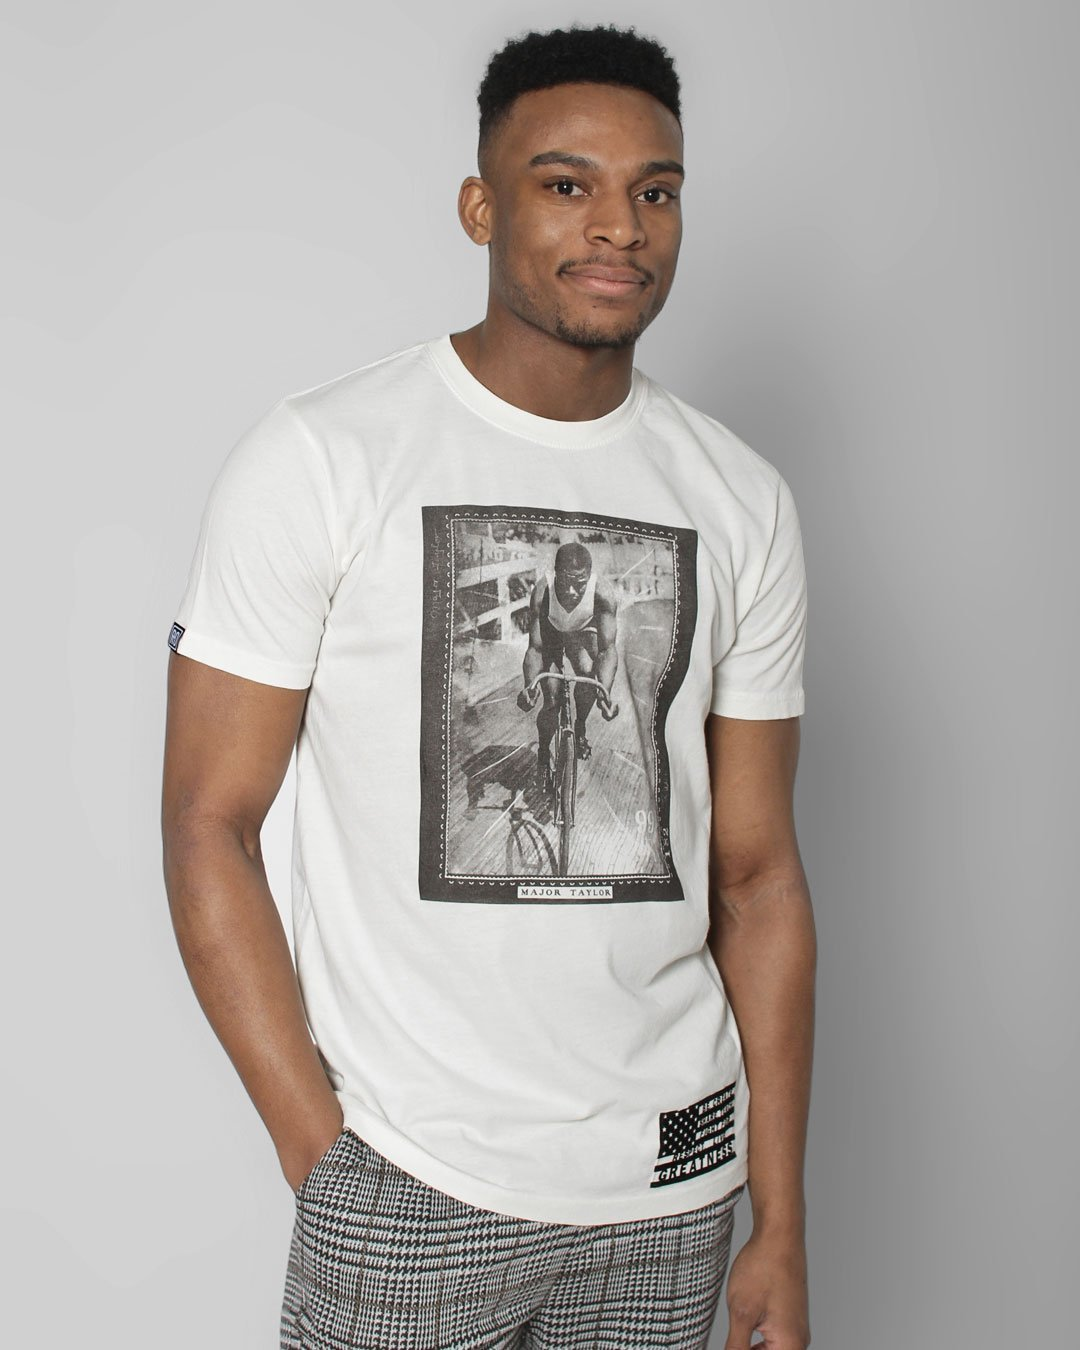 BHT - Marshall Taylor Photo Tee - Roots of Inc dba Roots of Fight